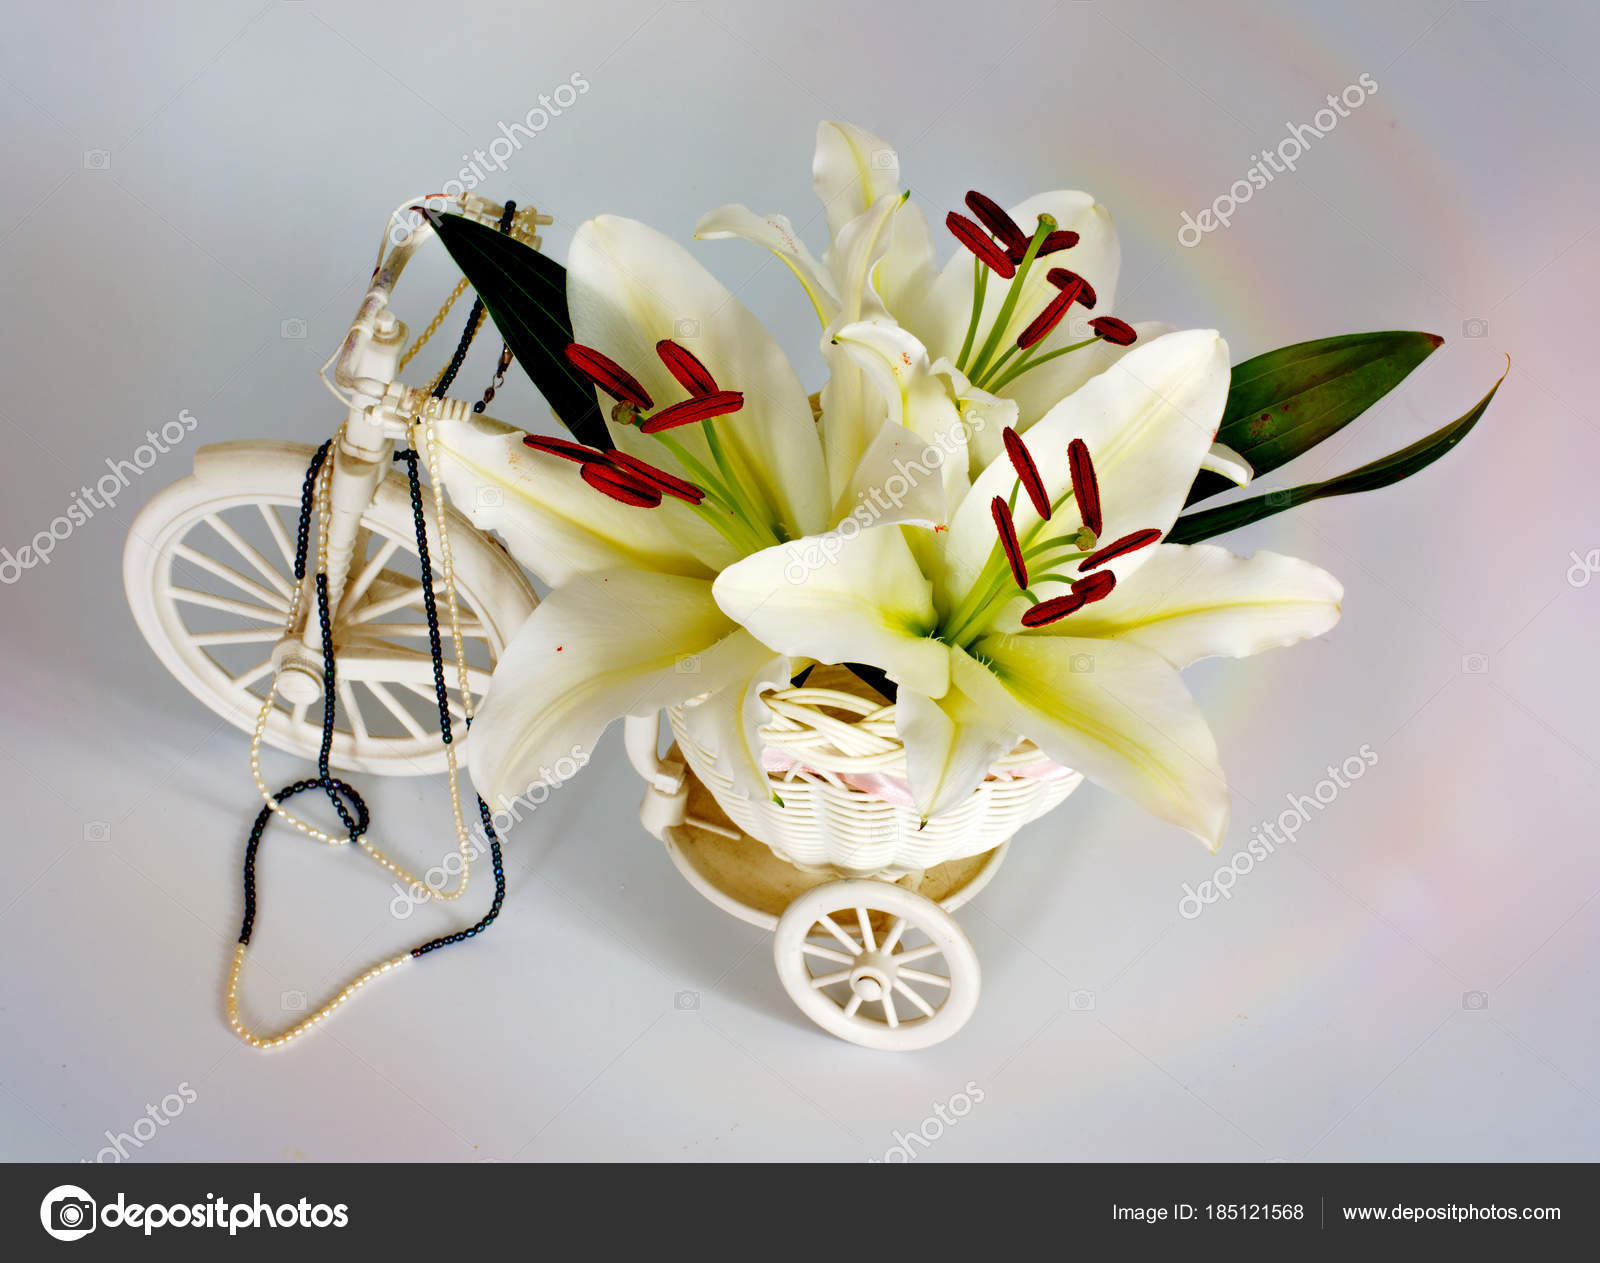 Flowers lilies adorned with stones and different decorations flowers lilies adorned with stones and different decorations stock photo izmirmasajfo